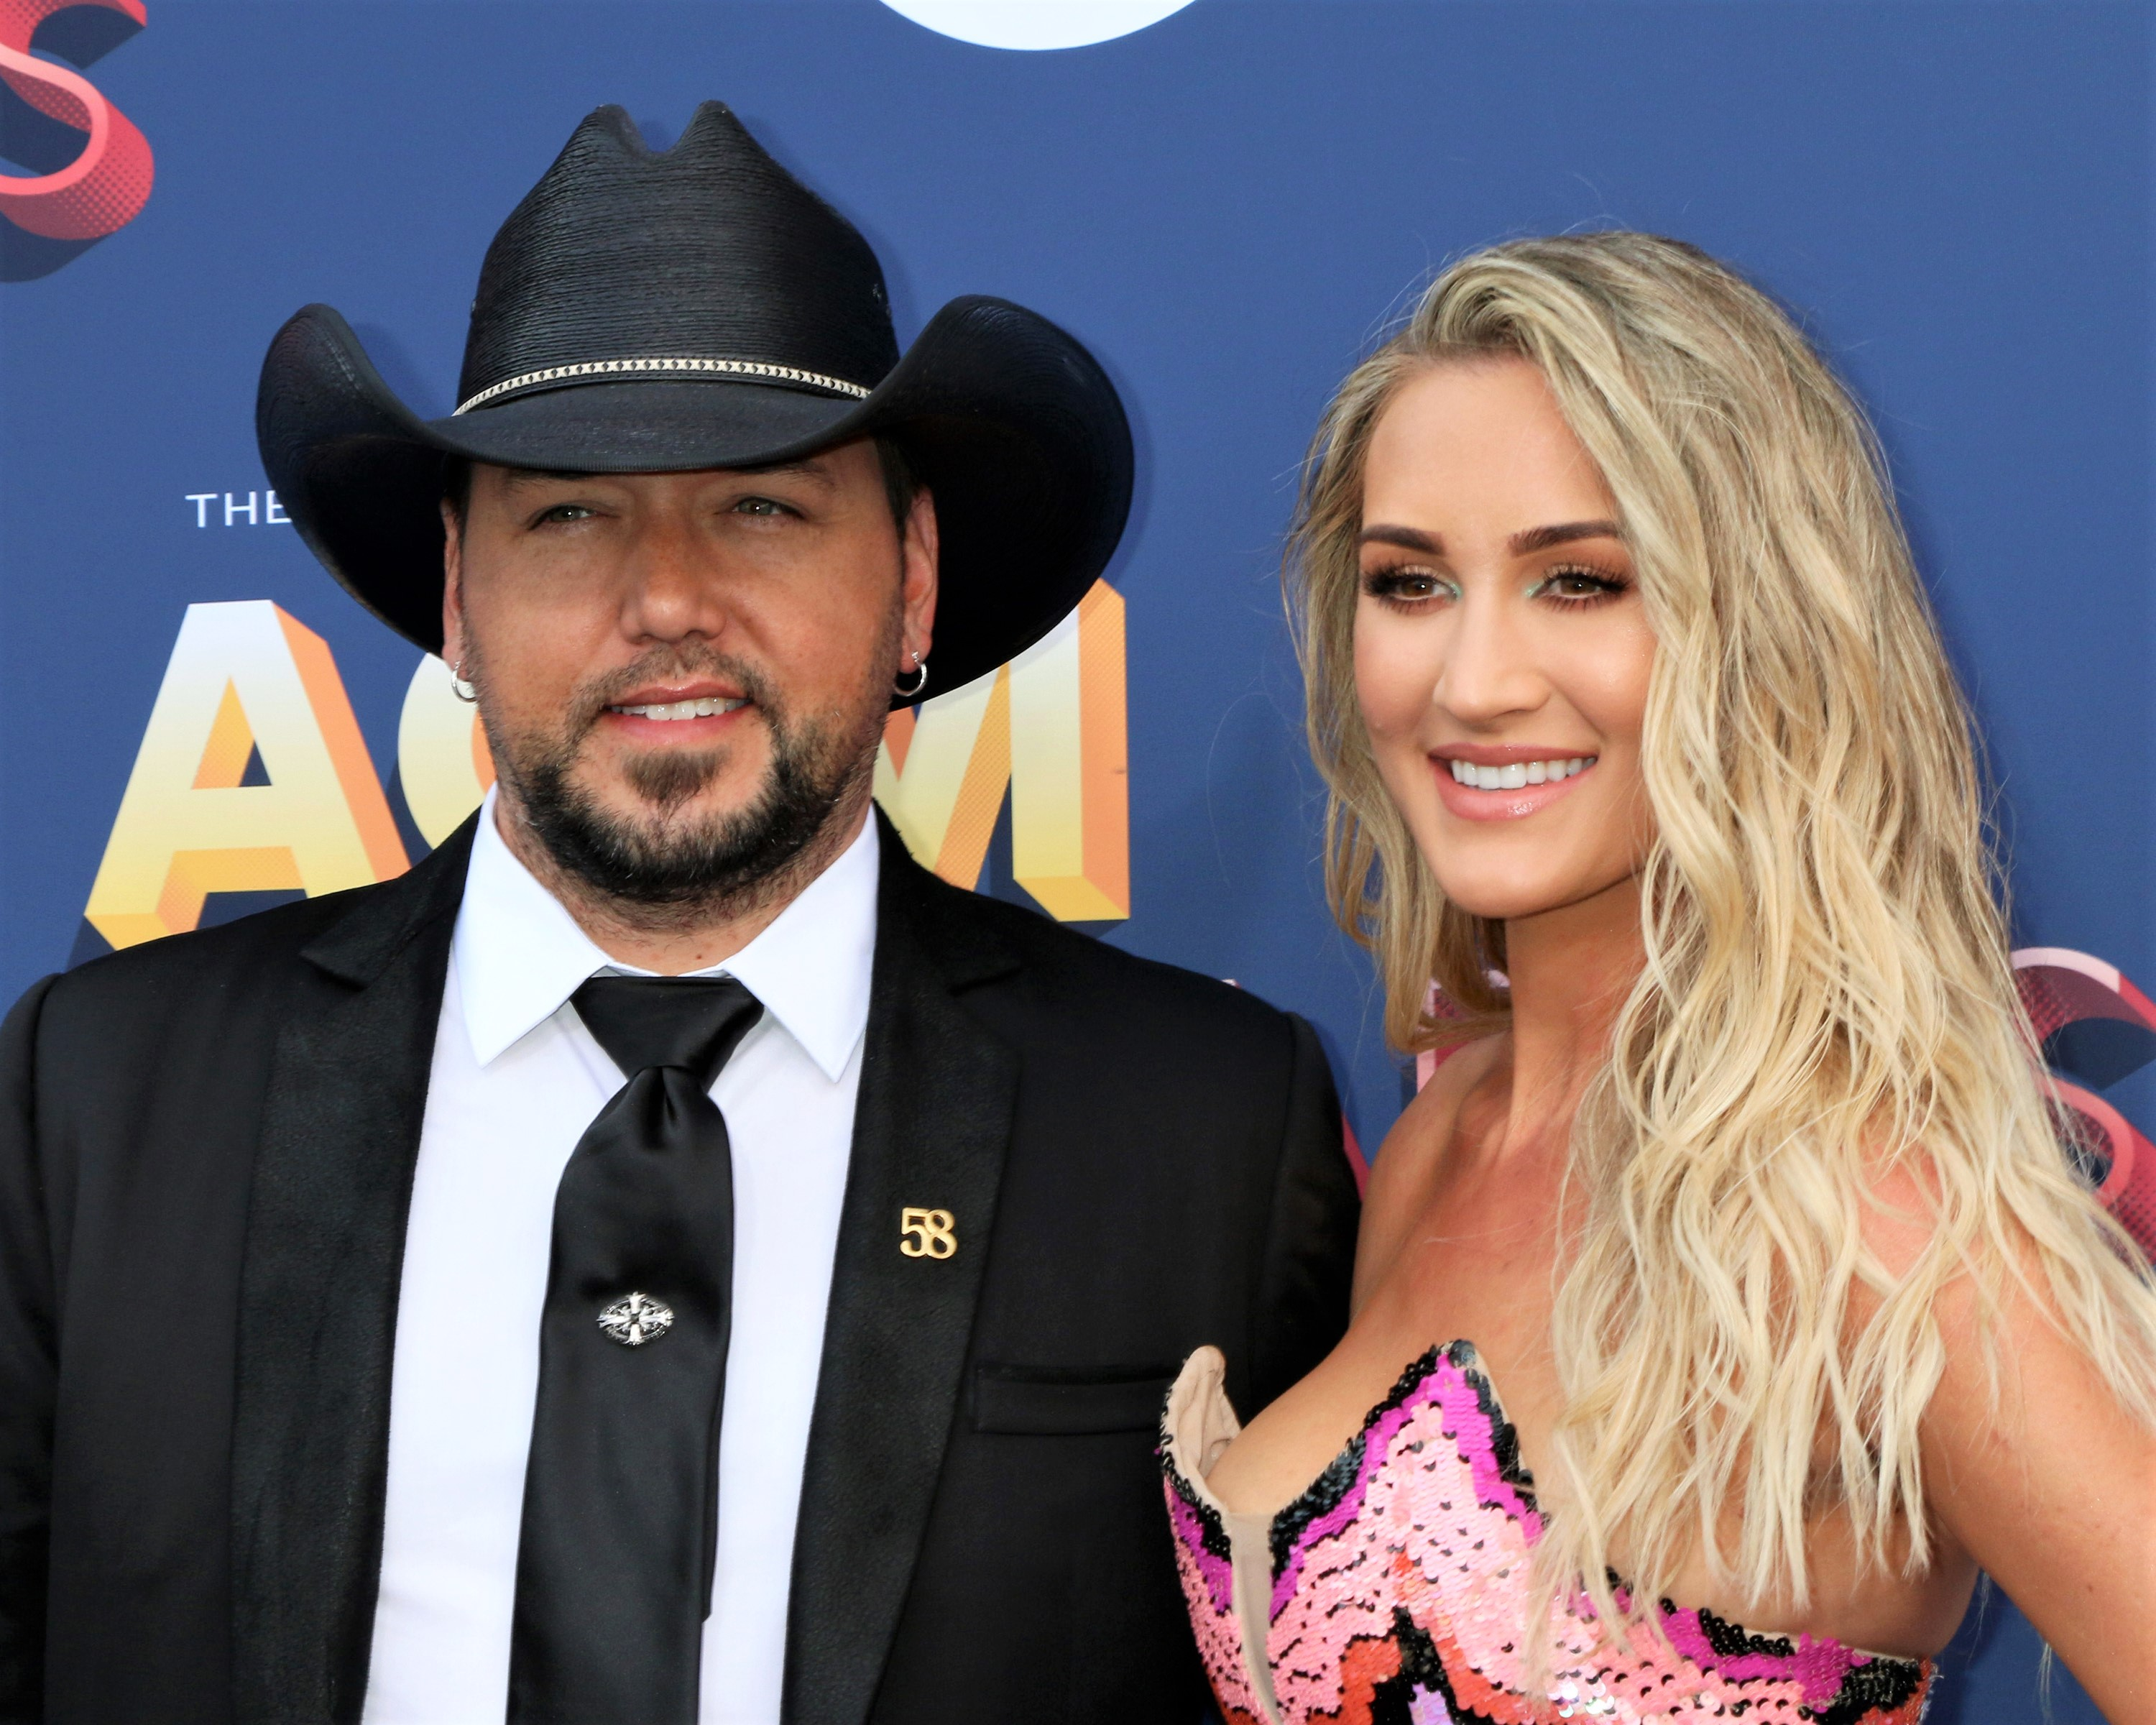 Black Cowboy Hat Jason Aldean and Brittany Kerr Pink Dress